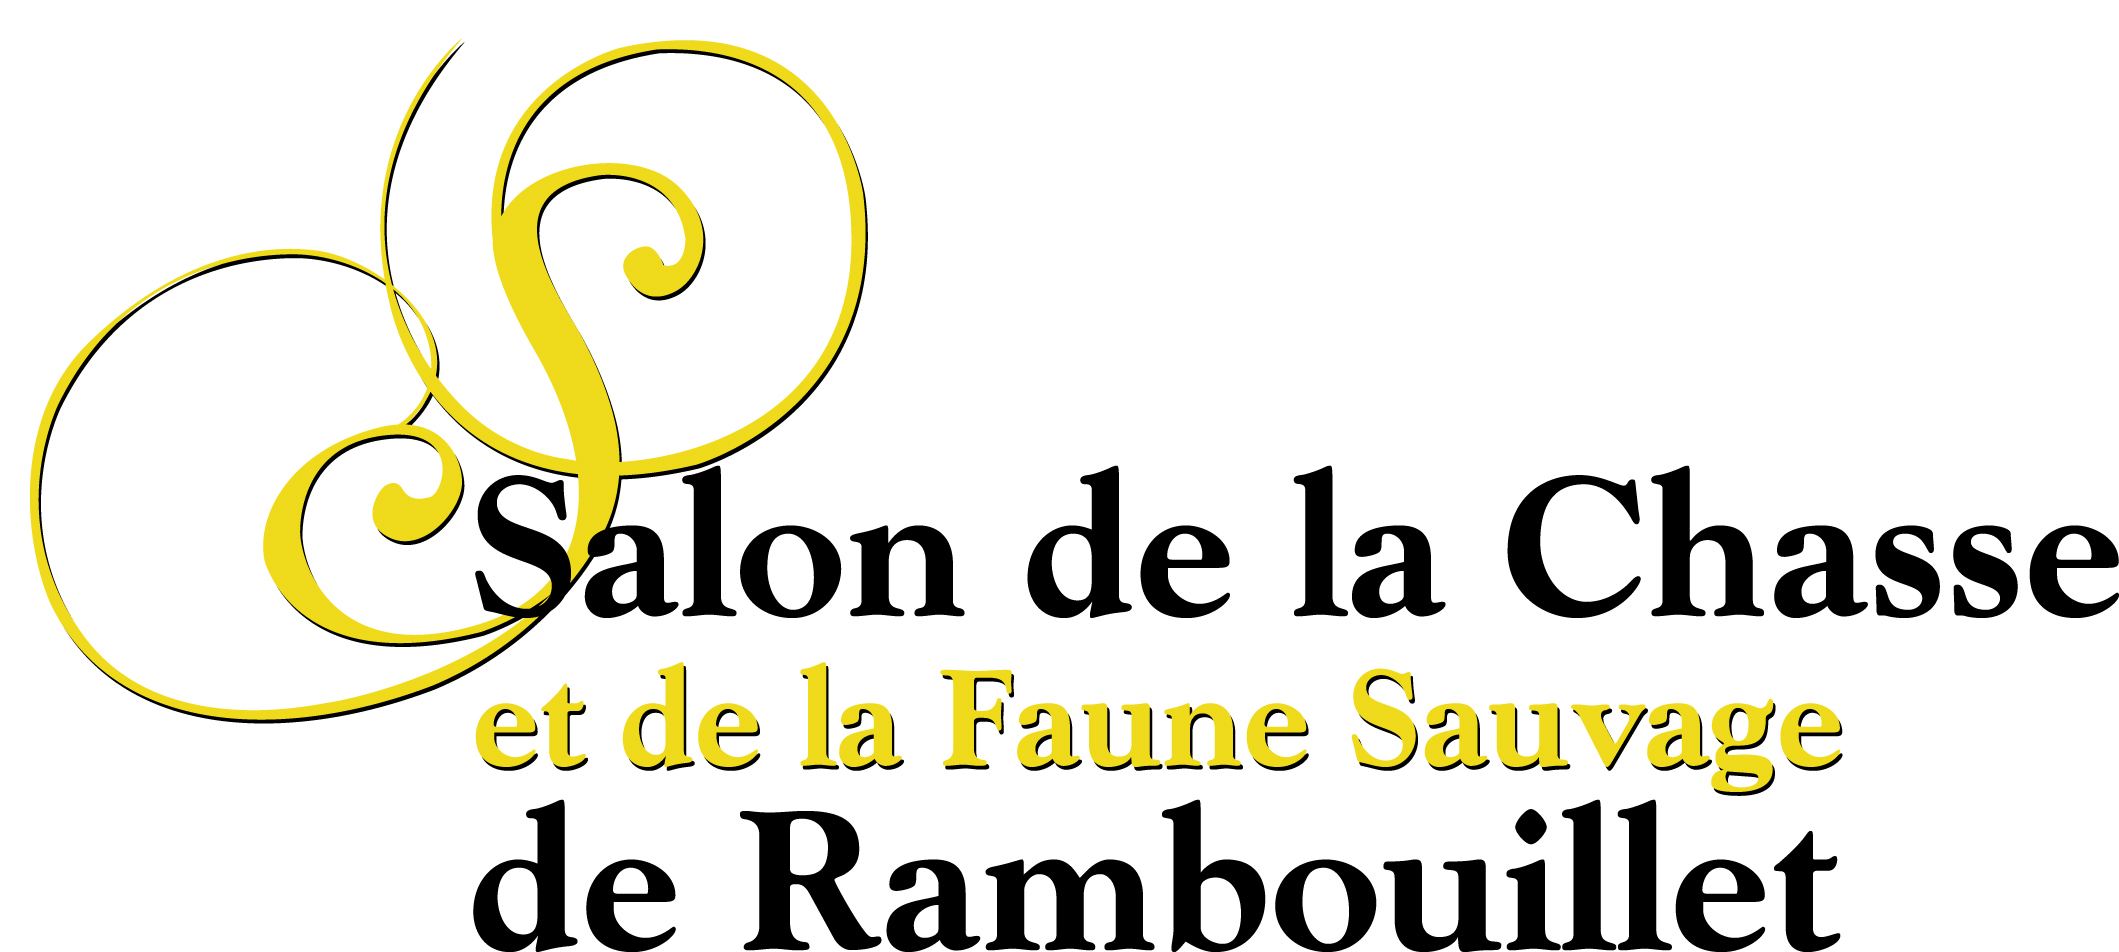 Salon de la chasse de rambouillet 20 me dition for Salon rambouillet